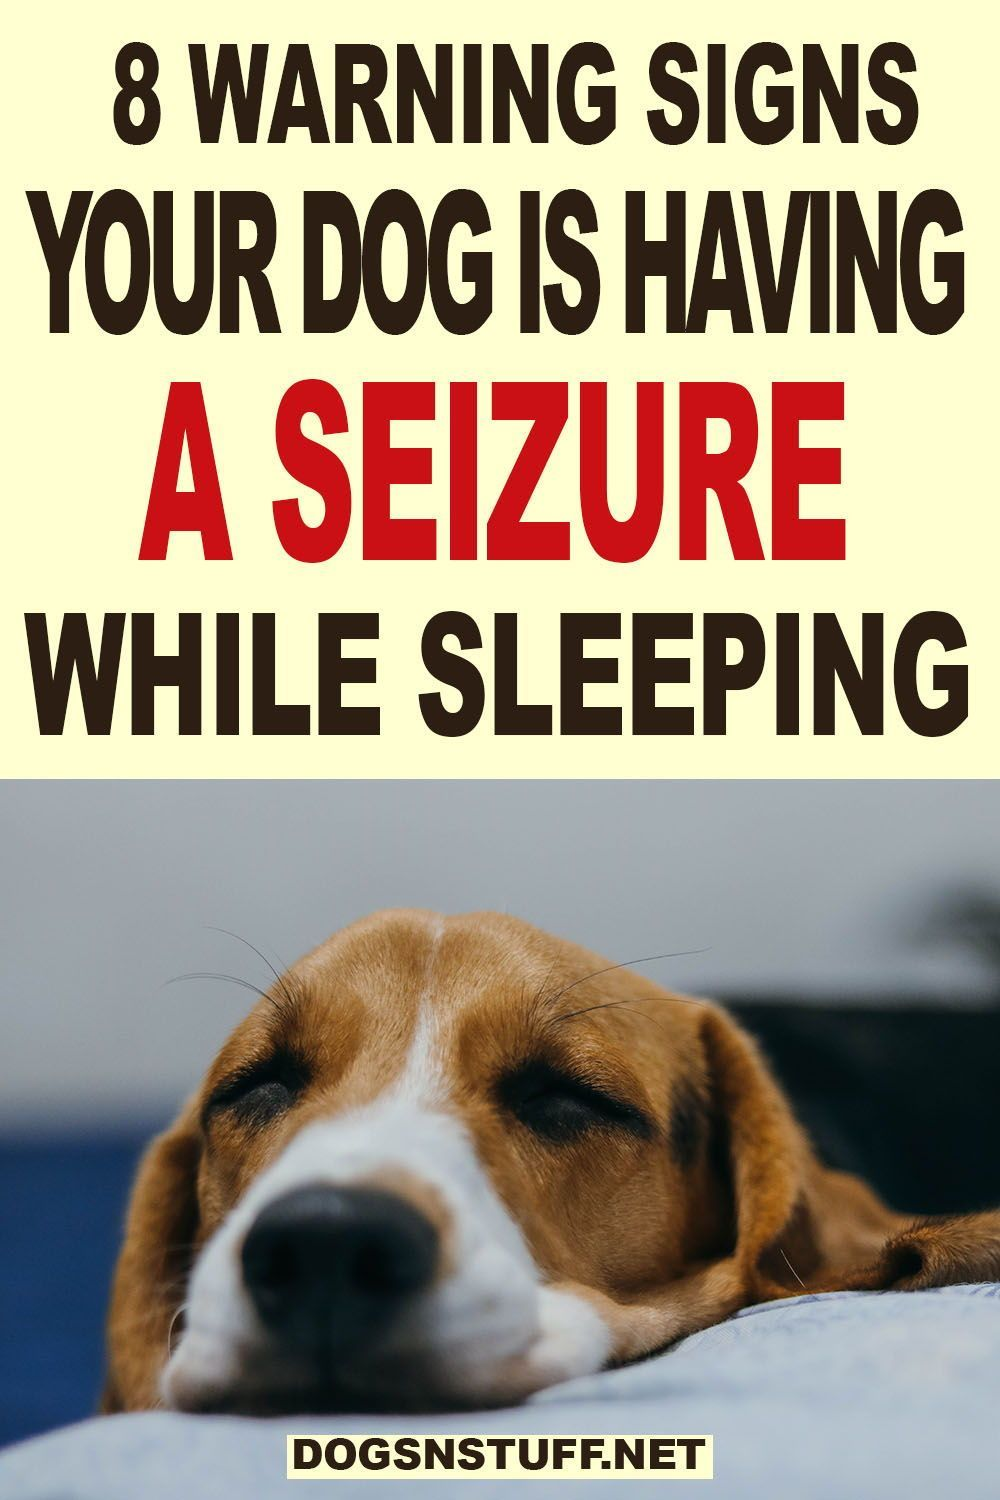 How To Tell If A Dog Is Having A Seizure While Sleeping 8 Warning Signs To Look Out For Dog Seizures Dogs Seizures